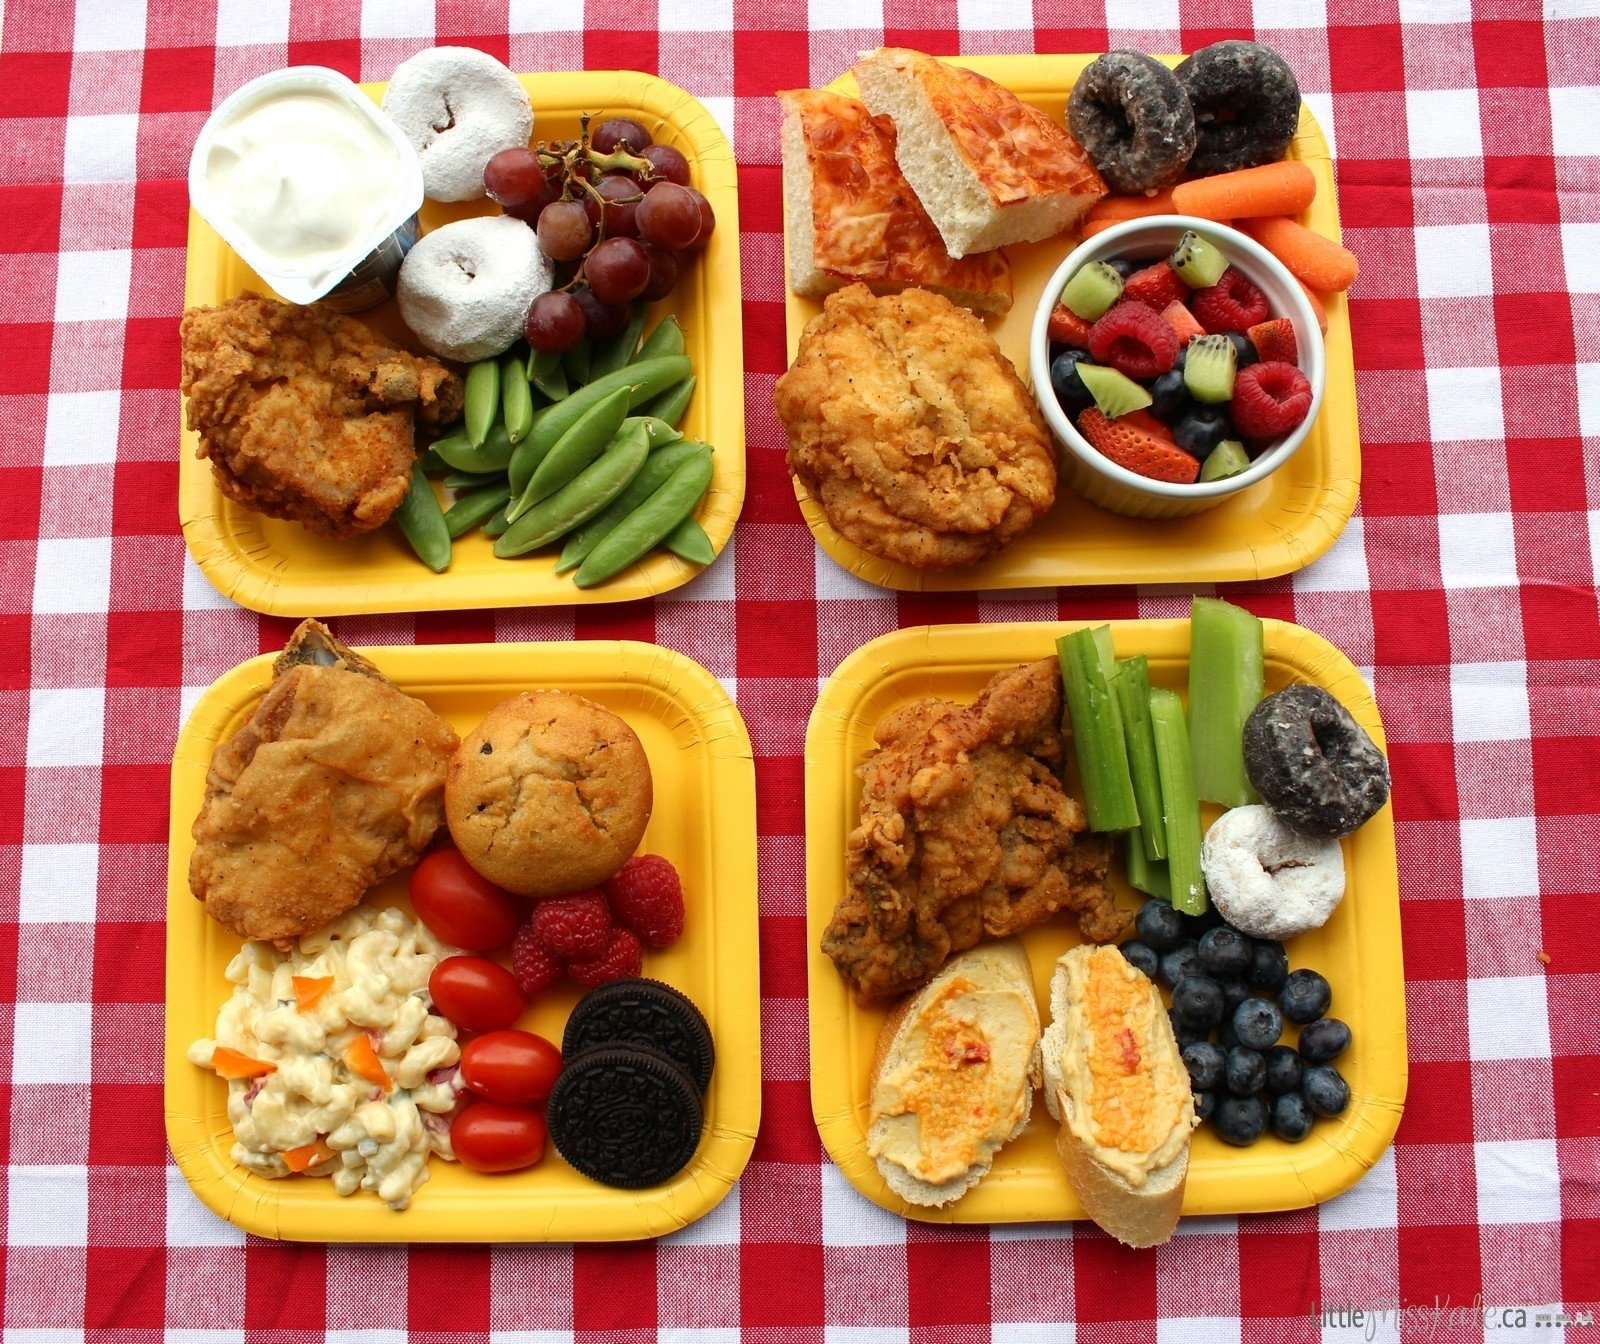 10 Perfect Food Ideas For A Picnic easy store bought 5 minute picnic meal ideas little miss kate 1 2020